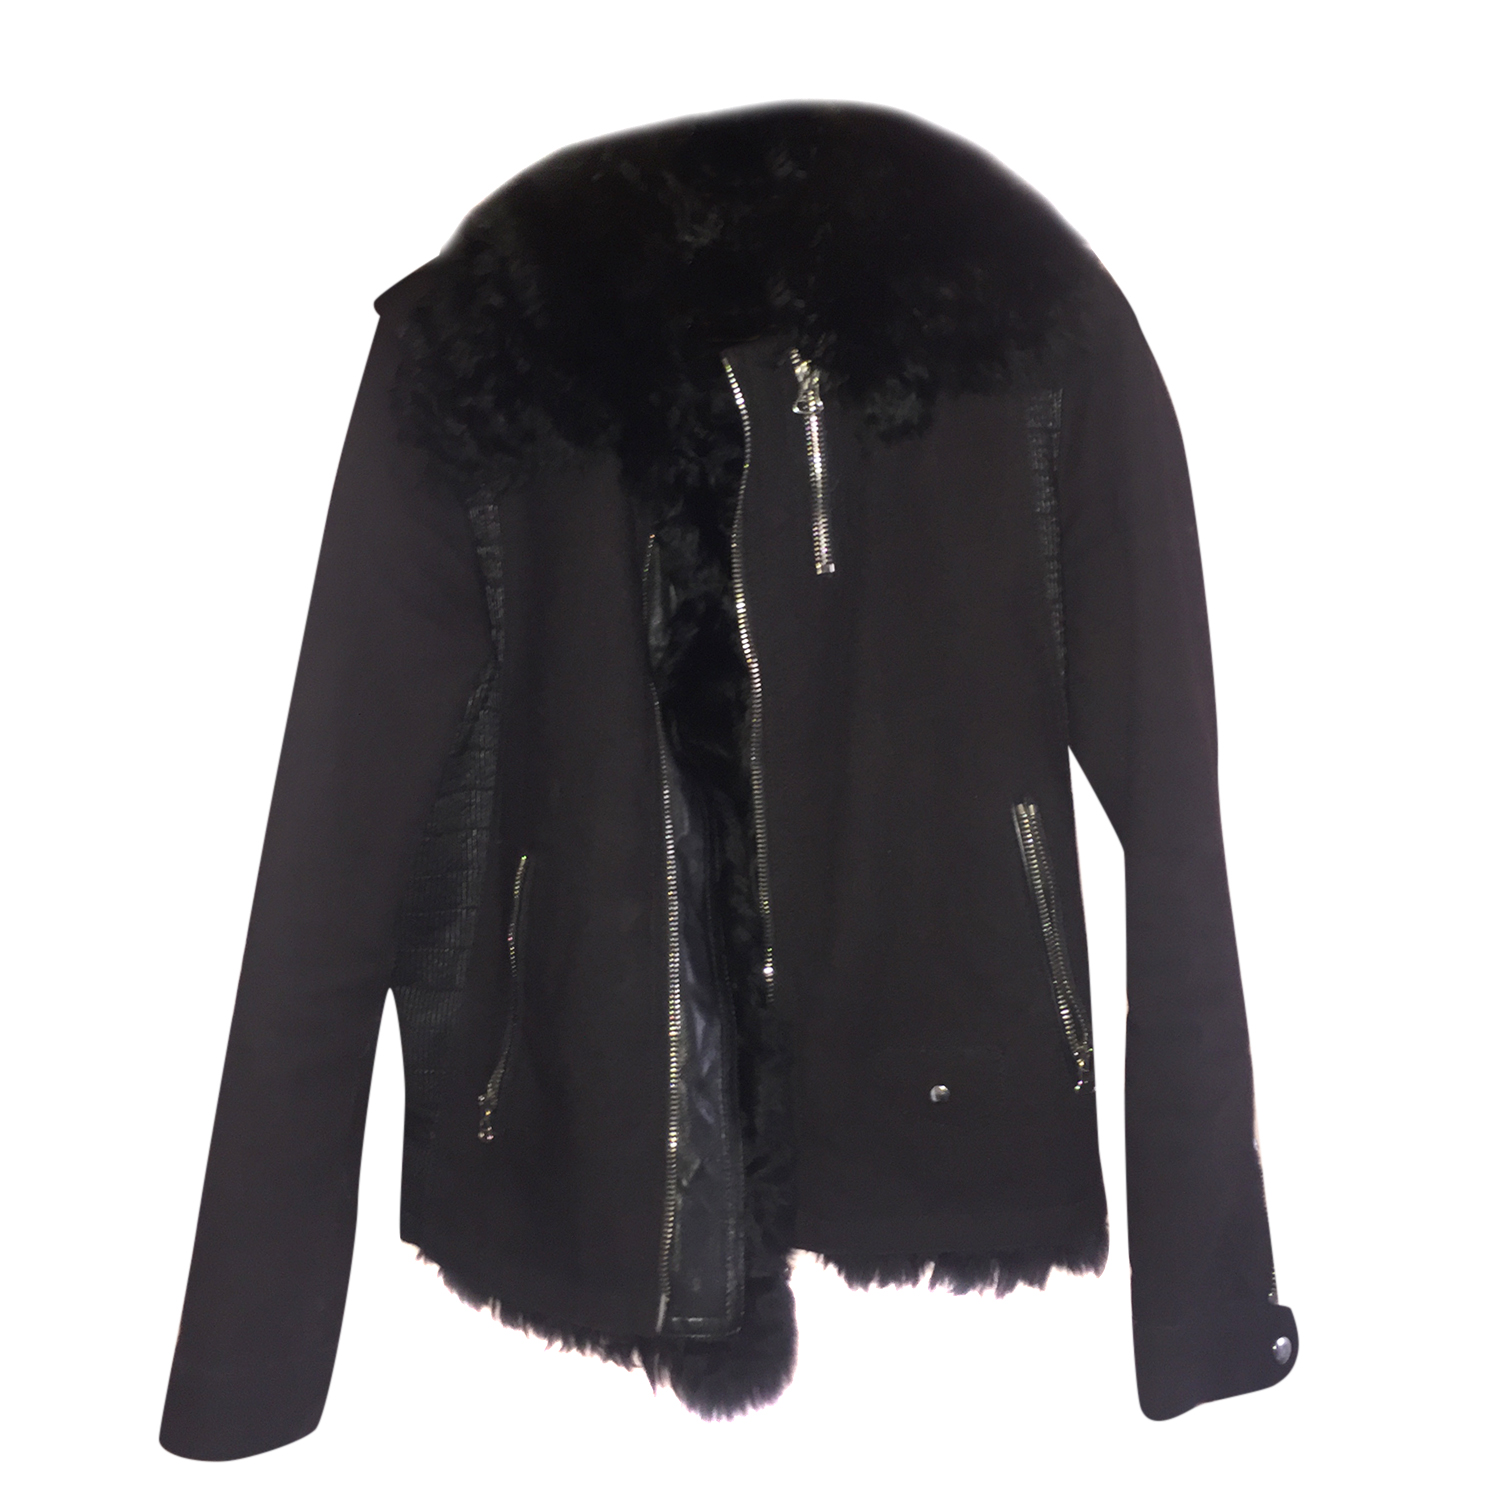 Lanvin Leather Fur Jacket